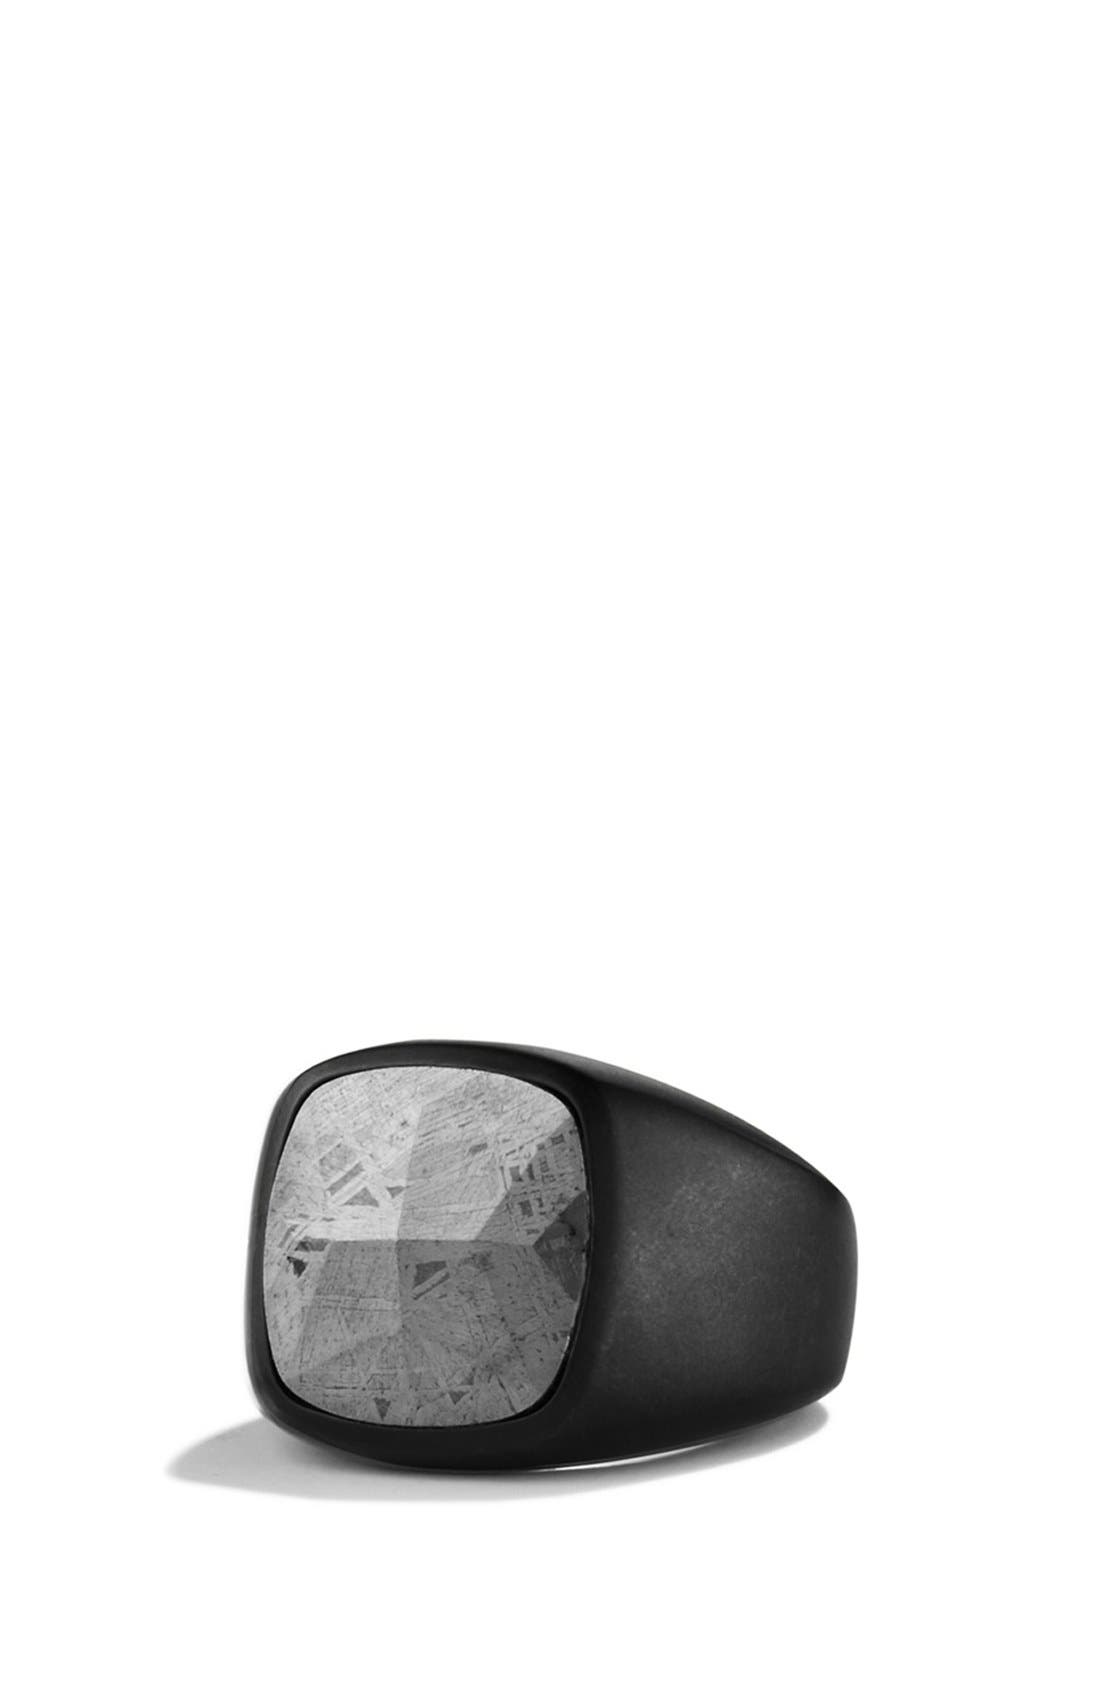 David Yurman 'Meteorite' Signet Ring in Black Titanium